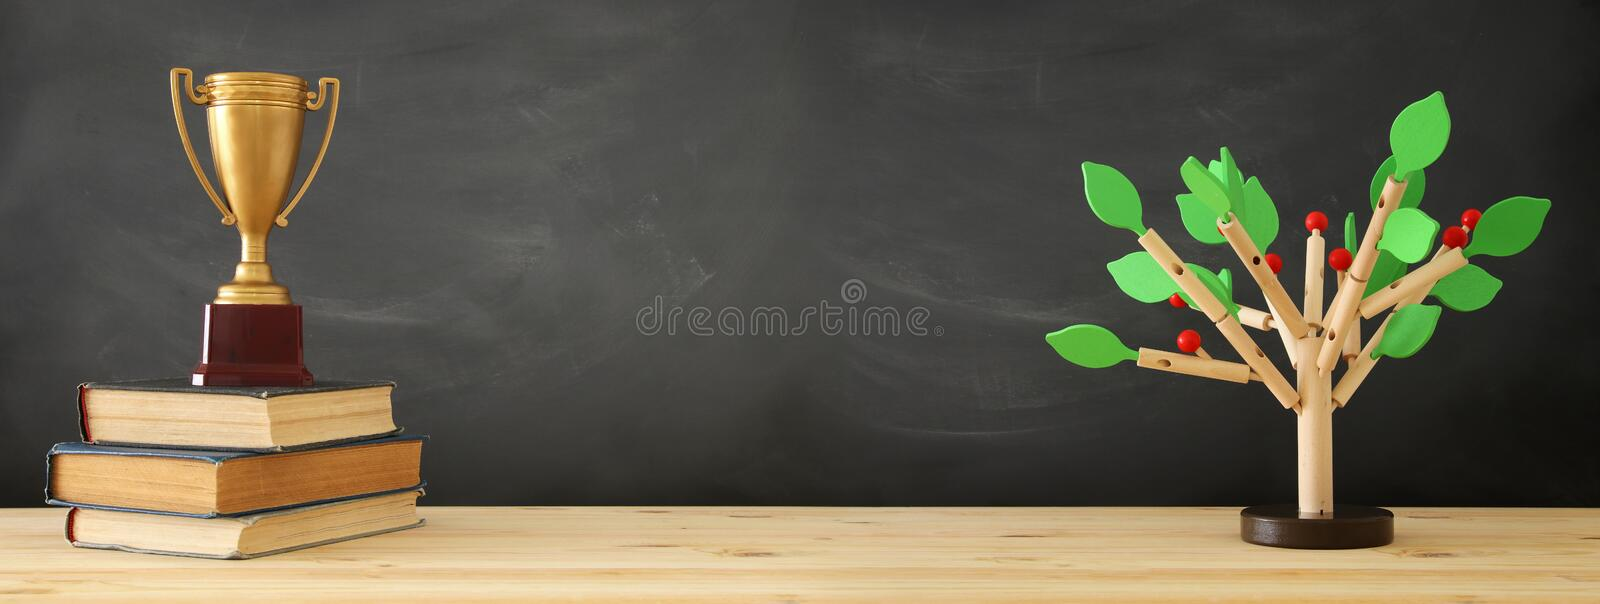 banner of open book, gold trophy and wooden tree puzzle over blackboard background. education and knowledge concept. stock photos